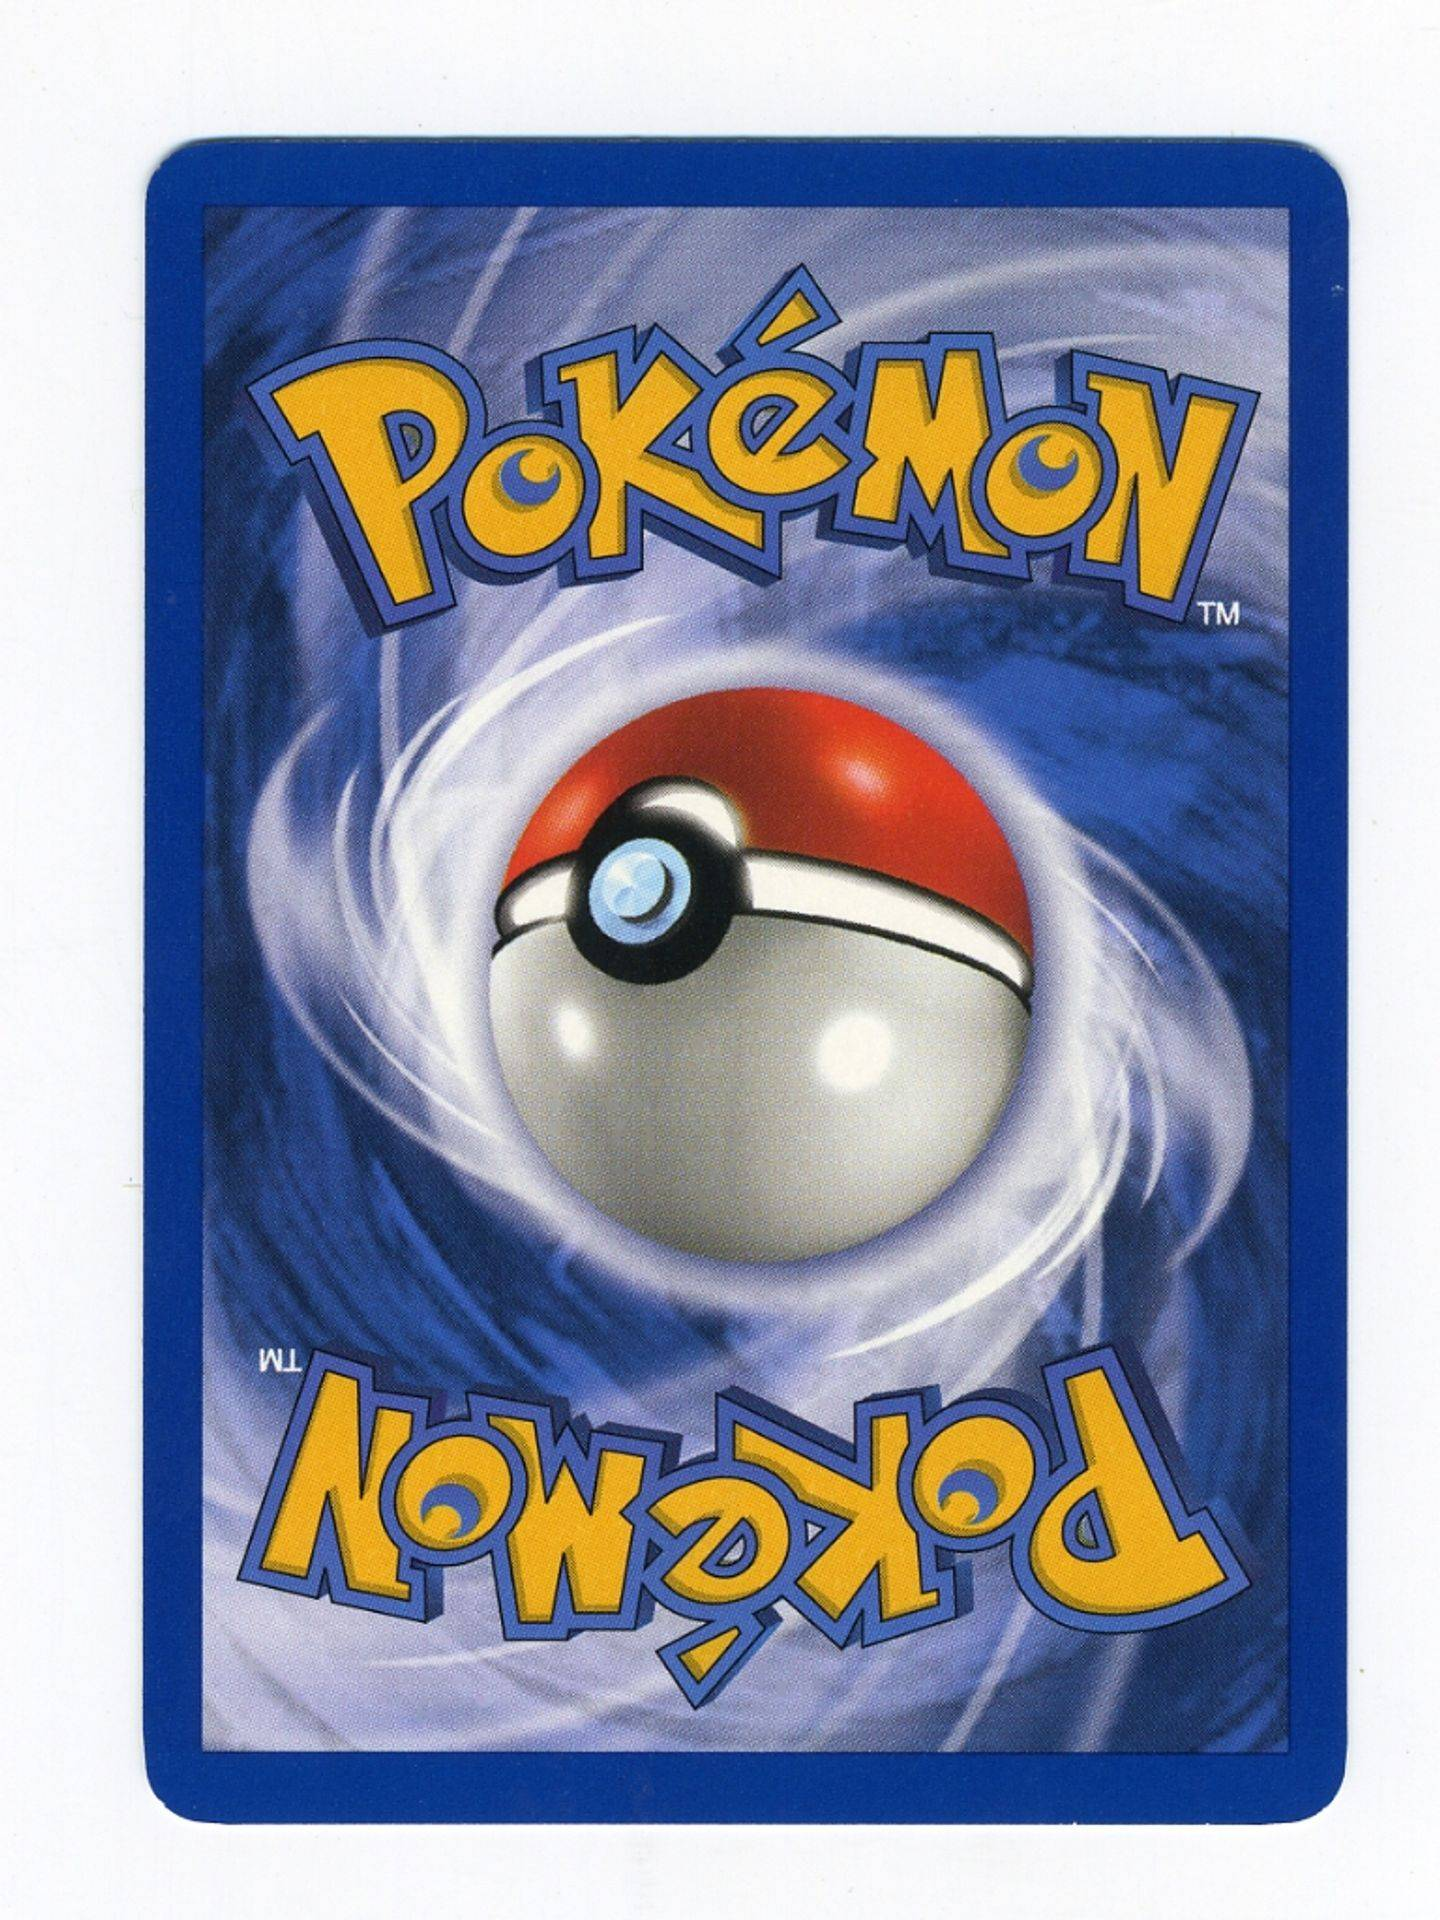 Pokemon TCG Card Back